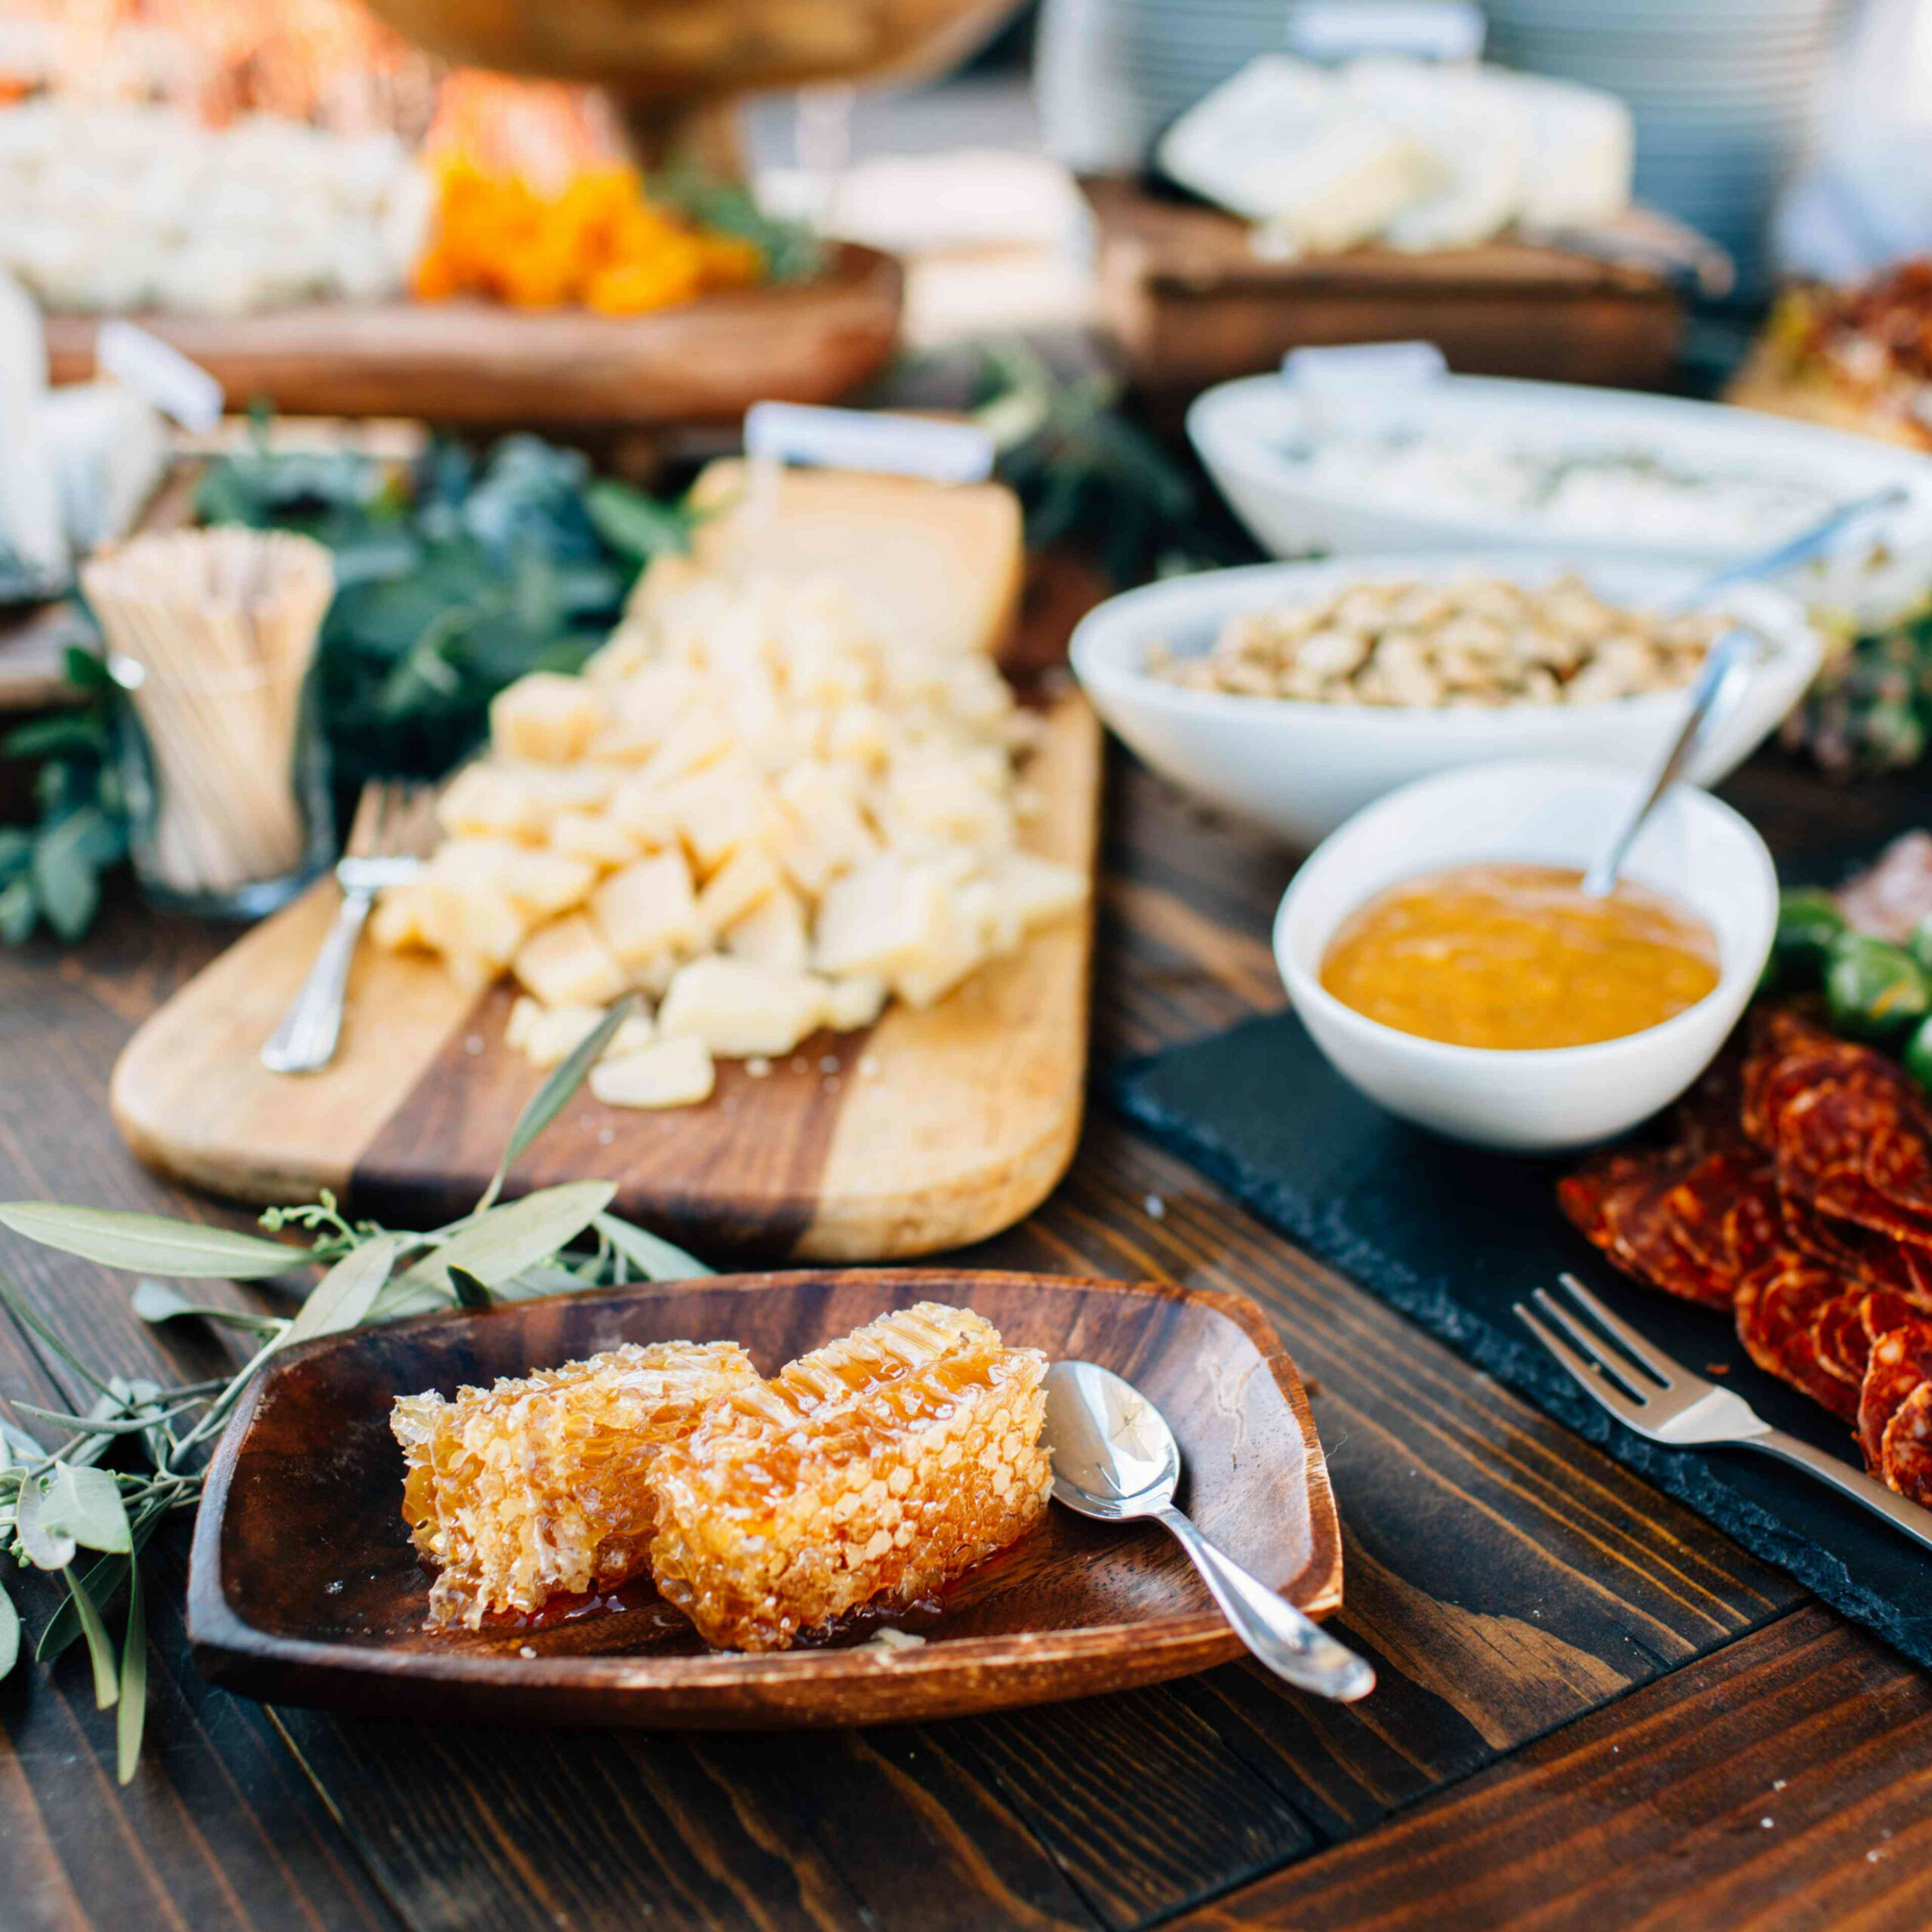 The Best Meal Delivery Services For Busy As Hell Couples - Dinner Recipes Bon Appetit